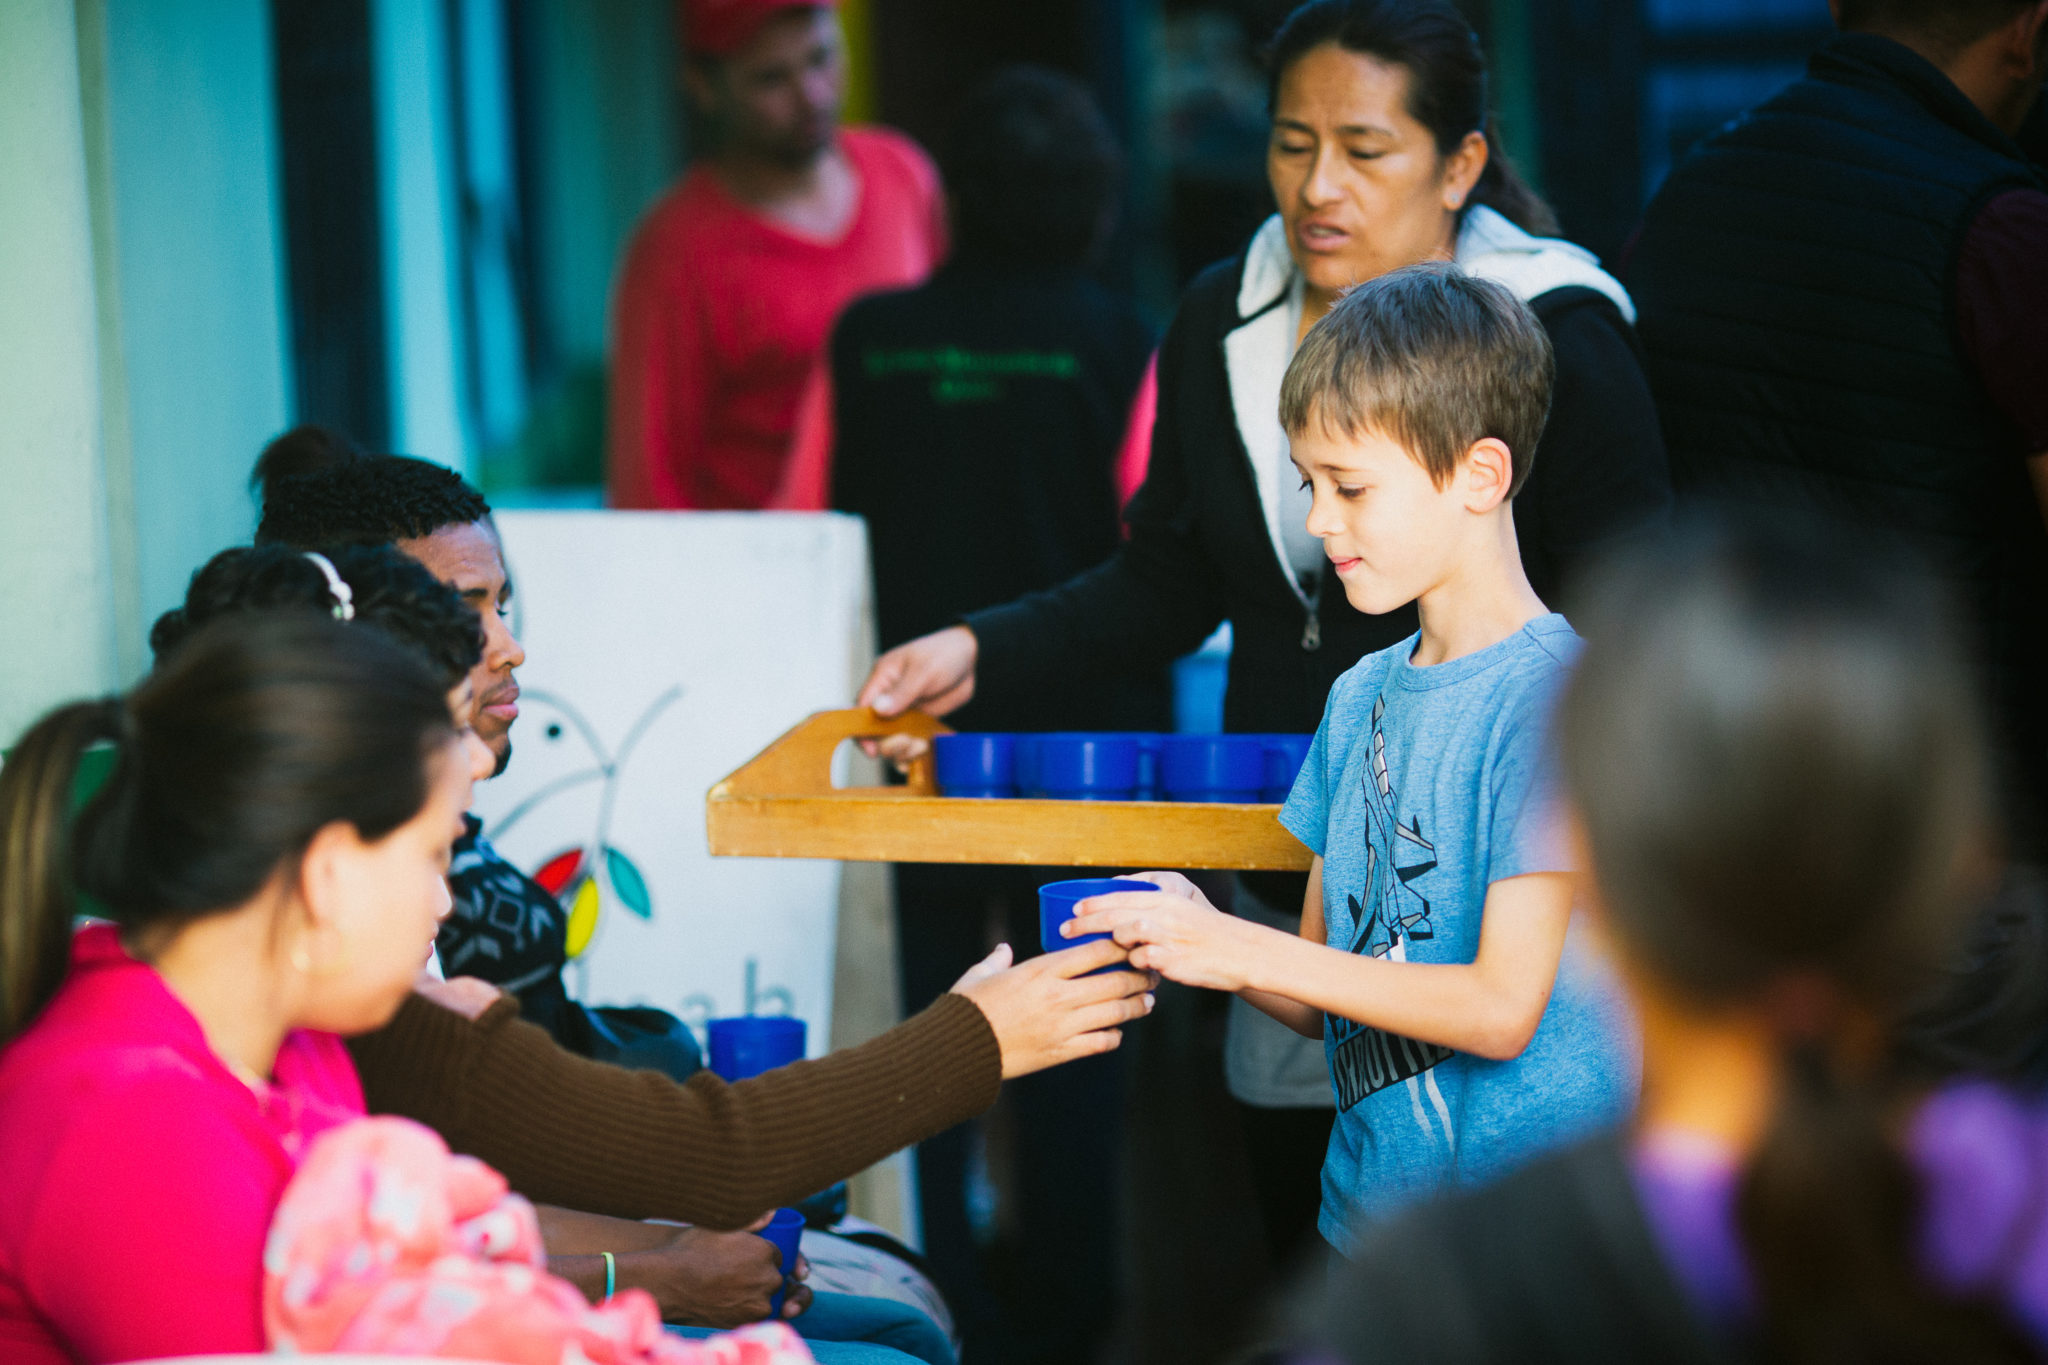 students handing out blue cups to people